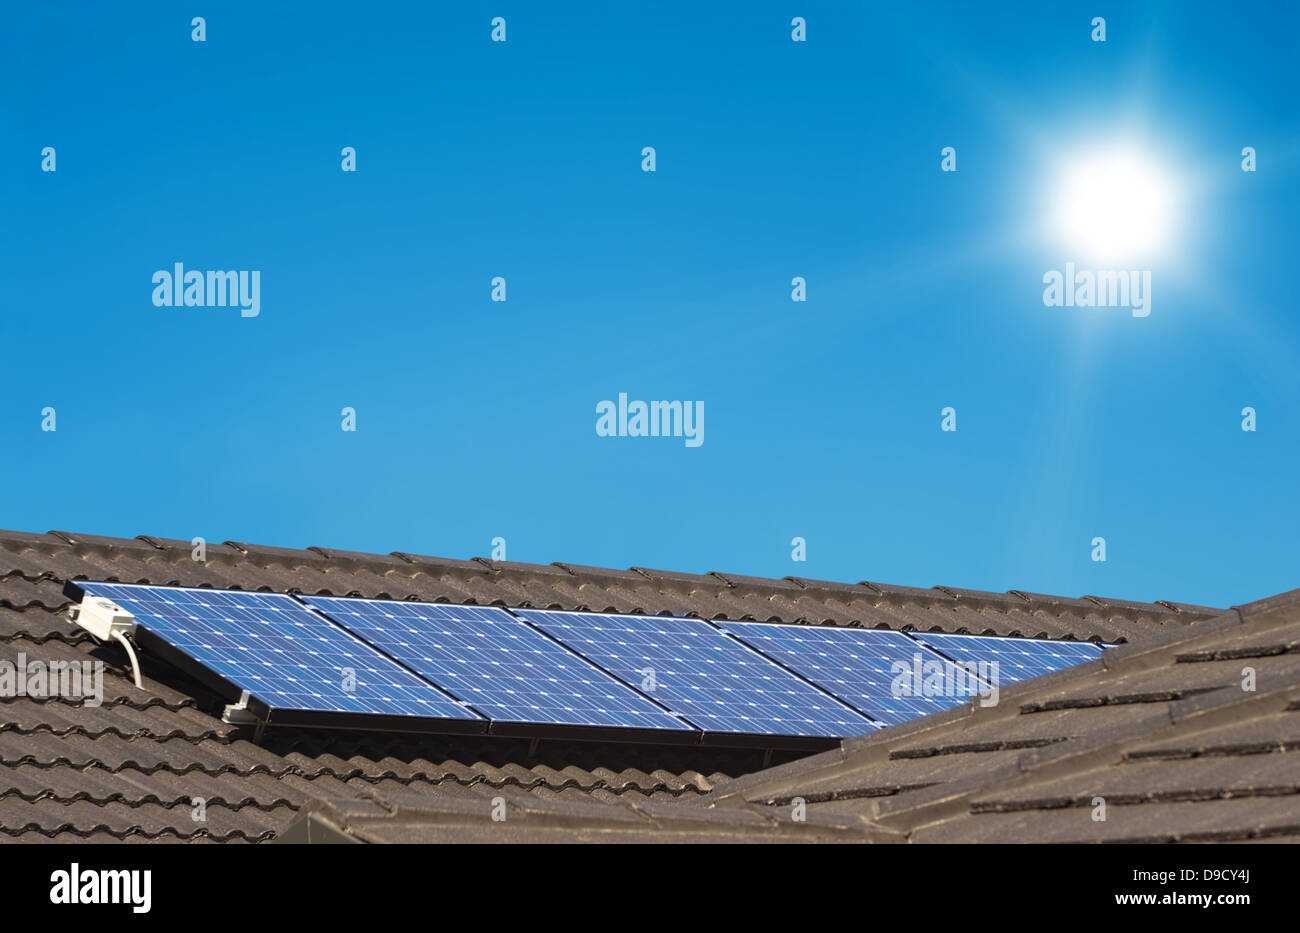 Solar panels on the roof of modern house - Stock Image